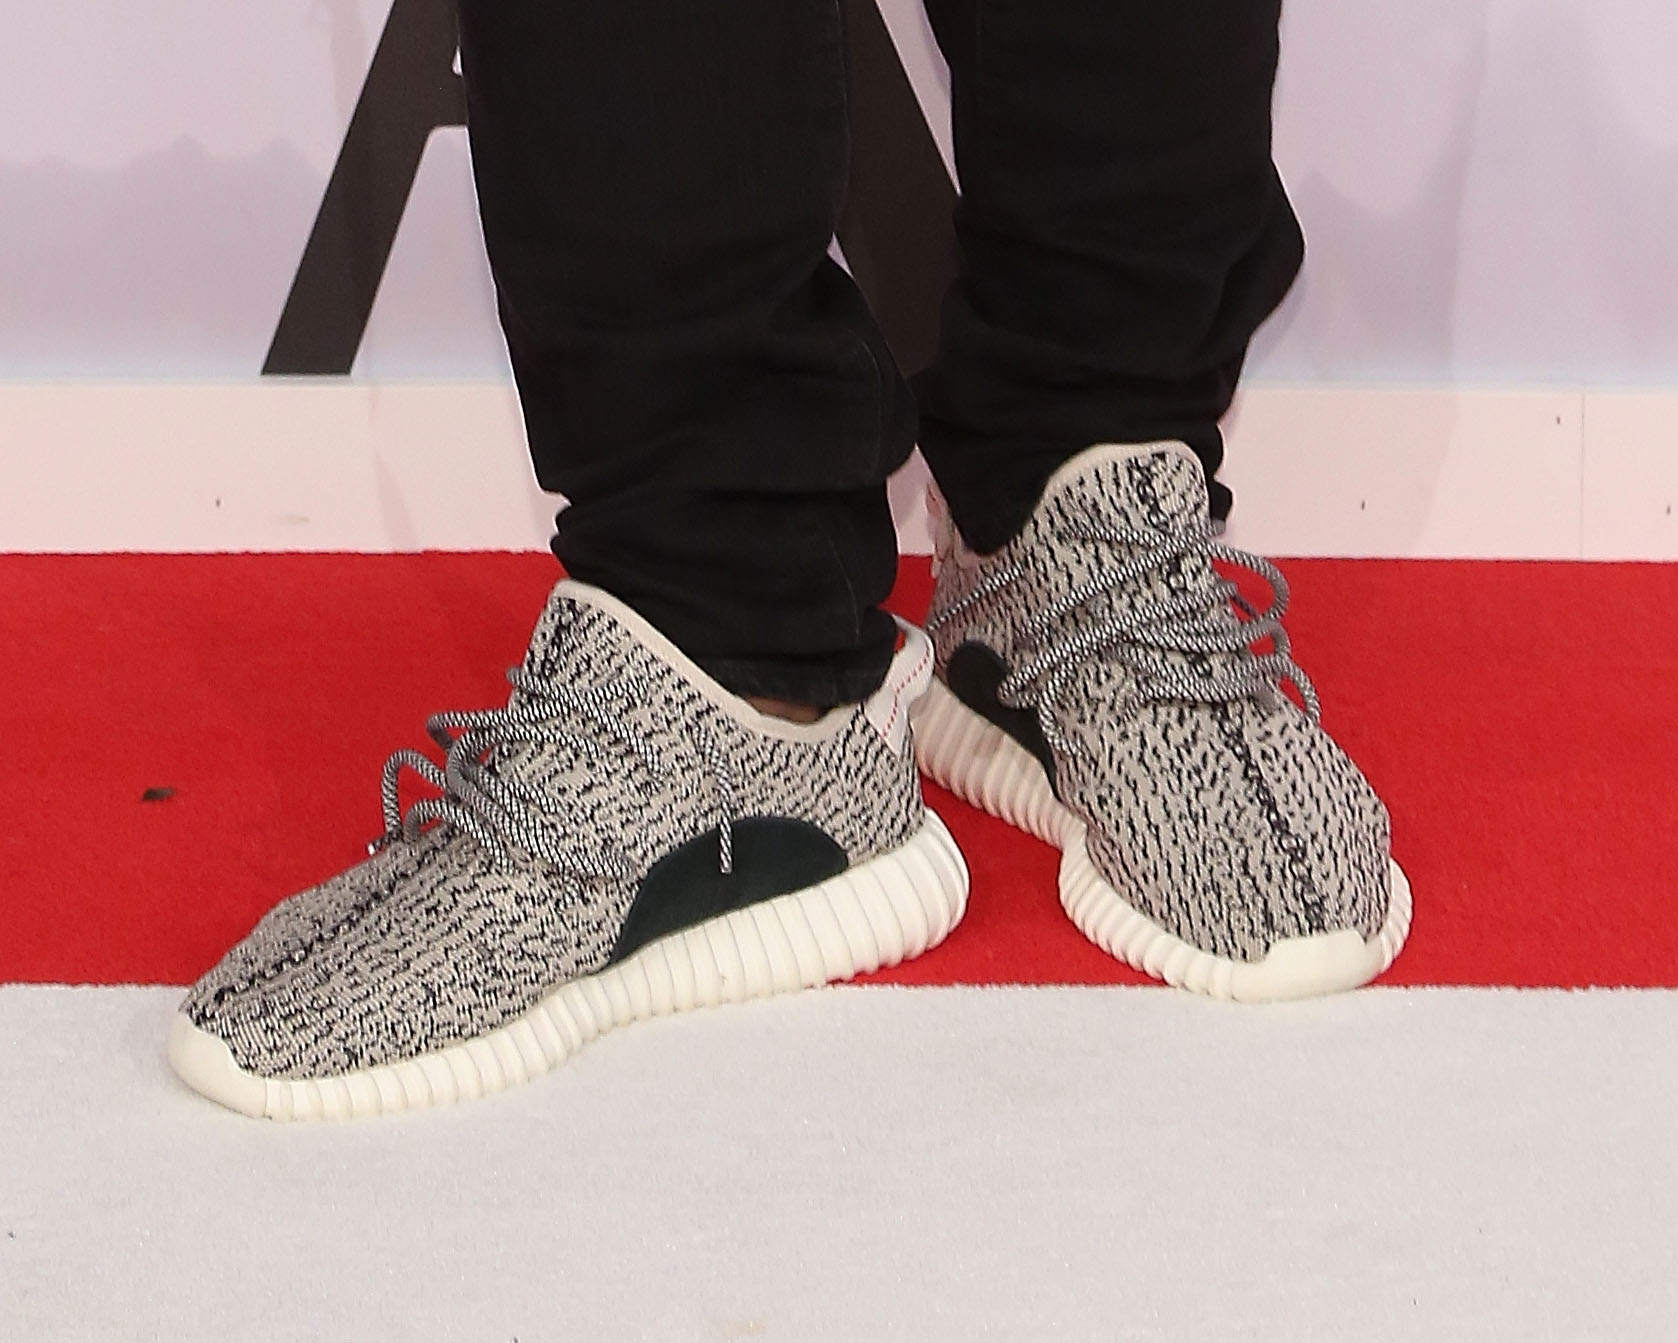 Kanye West's Yeezy Adidas shoes at the 2015 CFDA Awards at Alice Tully Hall at Lincoln Center on June 1, 2015 in New York City.